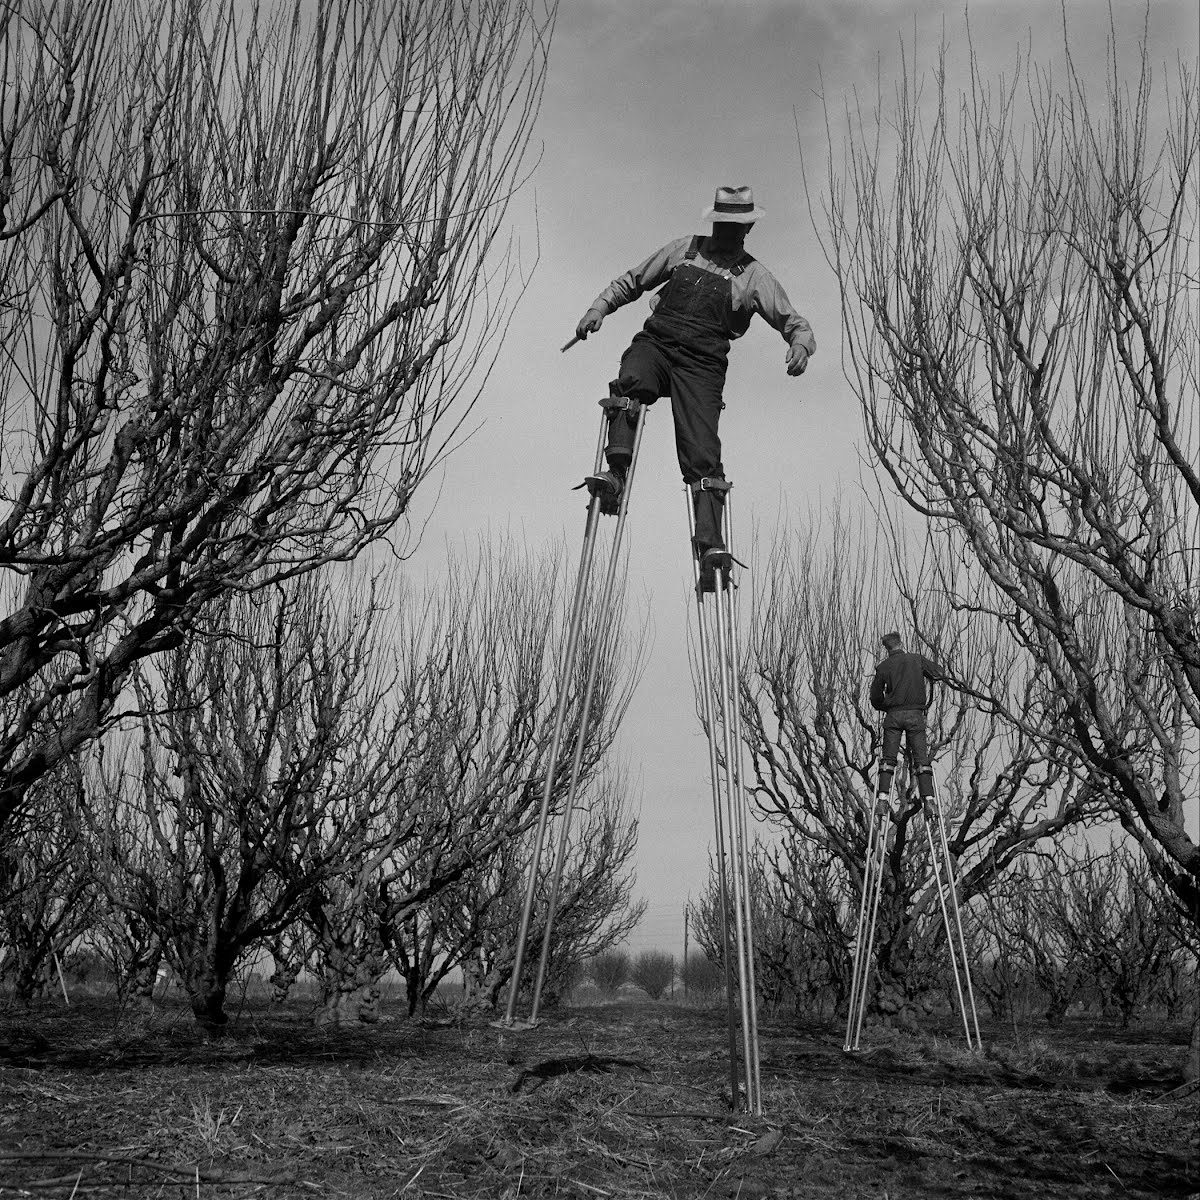 Farmer Wayne Deming Of Clovis, Calif. Making Stilts For His Orchard